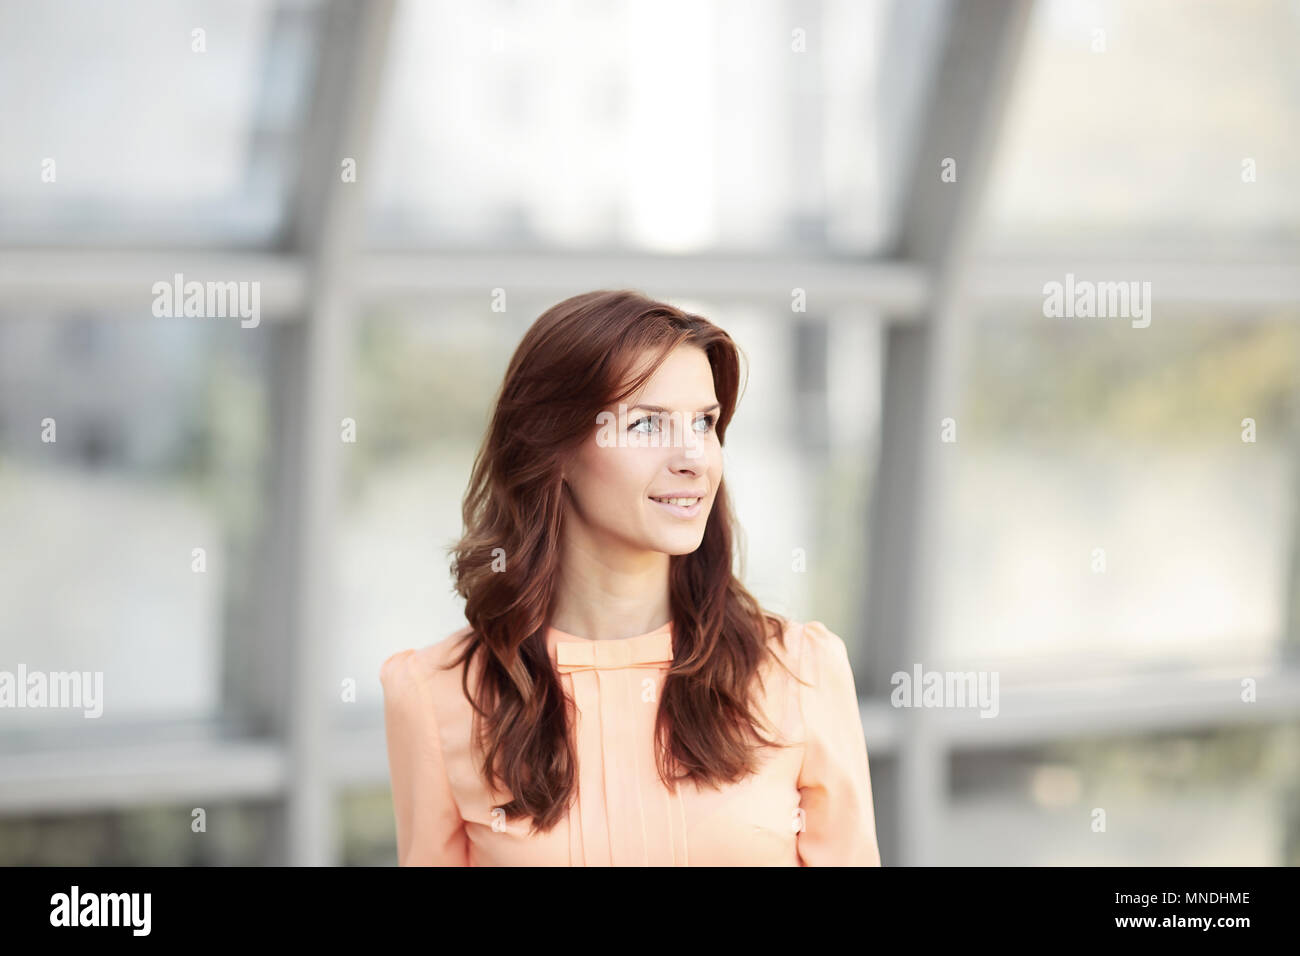 close up.portrait of modern young woman on blurred office background. - Stock Image